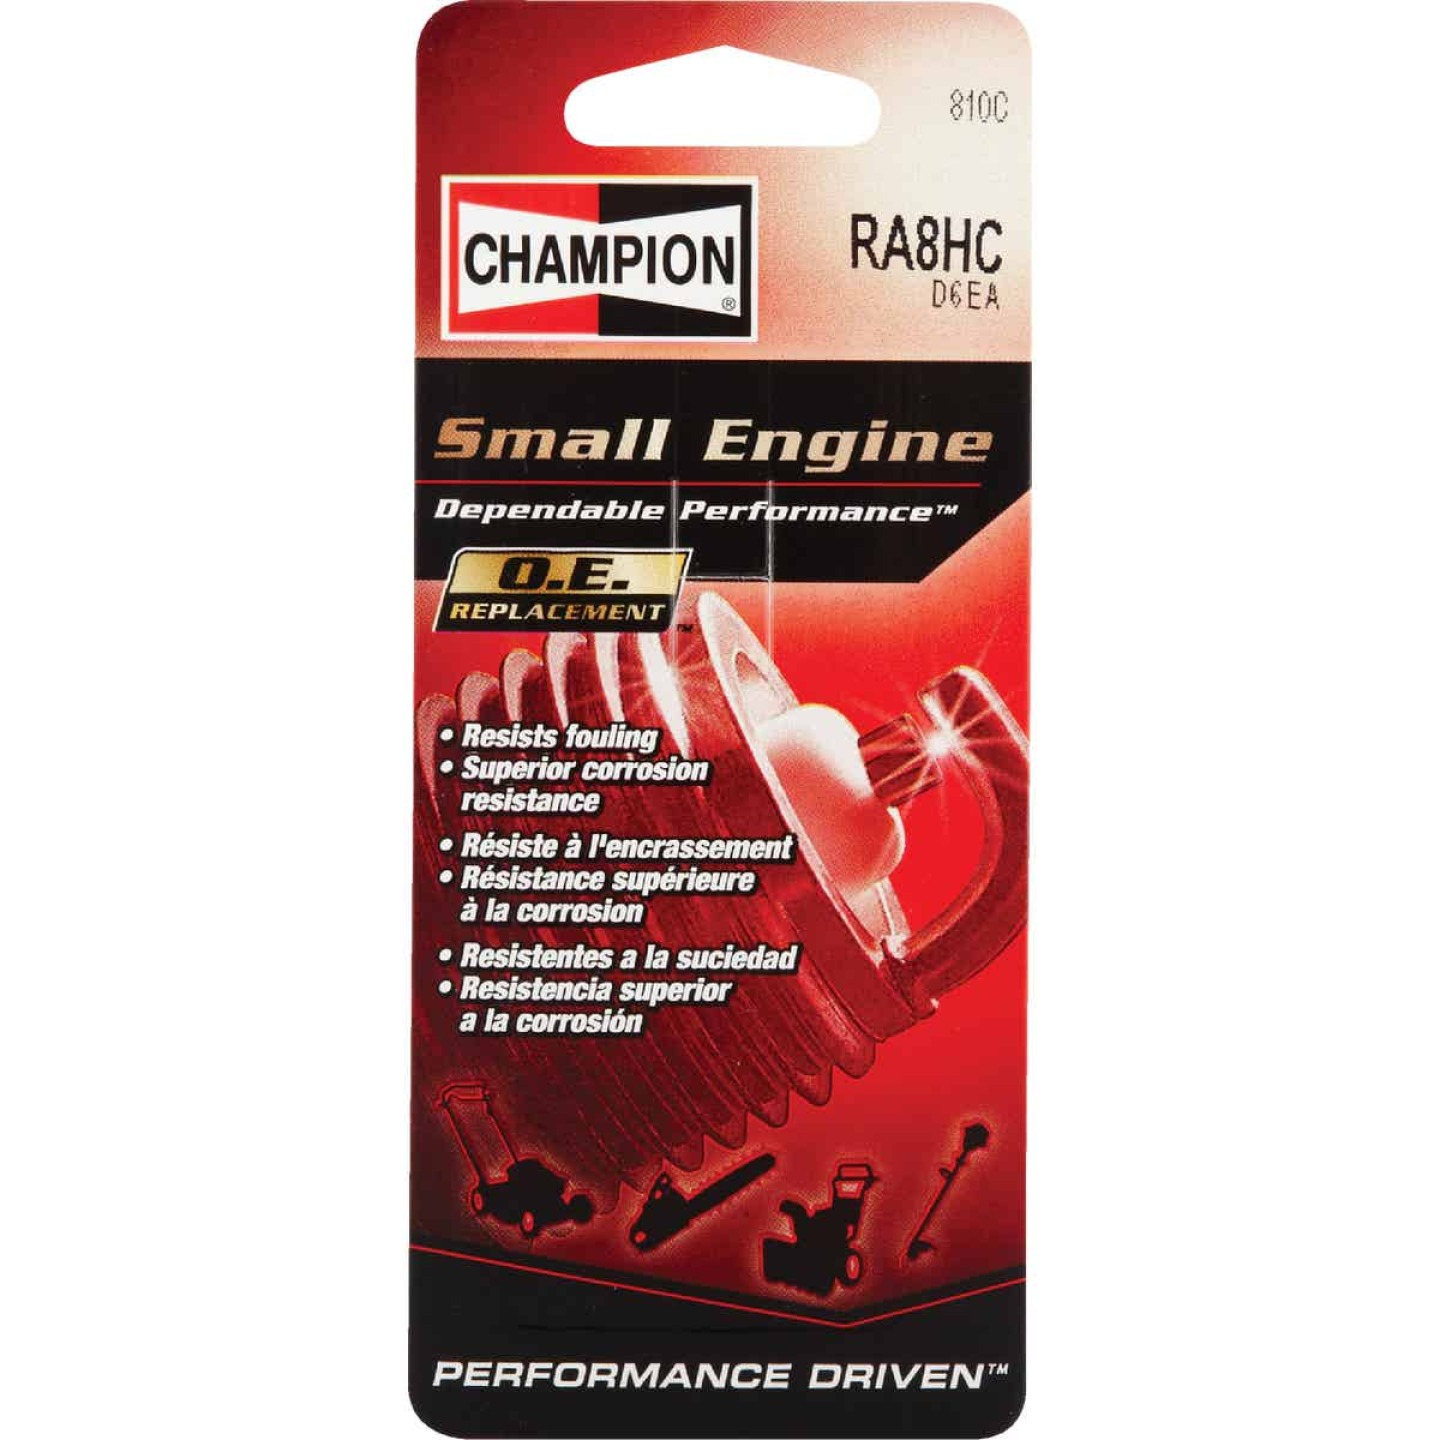 Champion RA8HC Copper Plus Small Engine Spark Plug Image 1